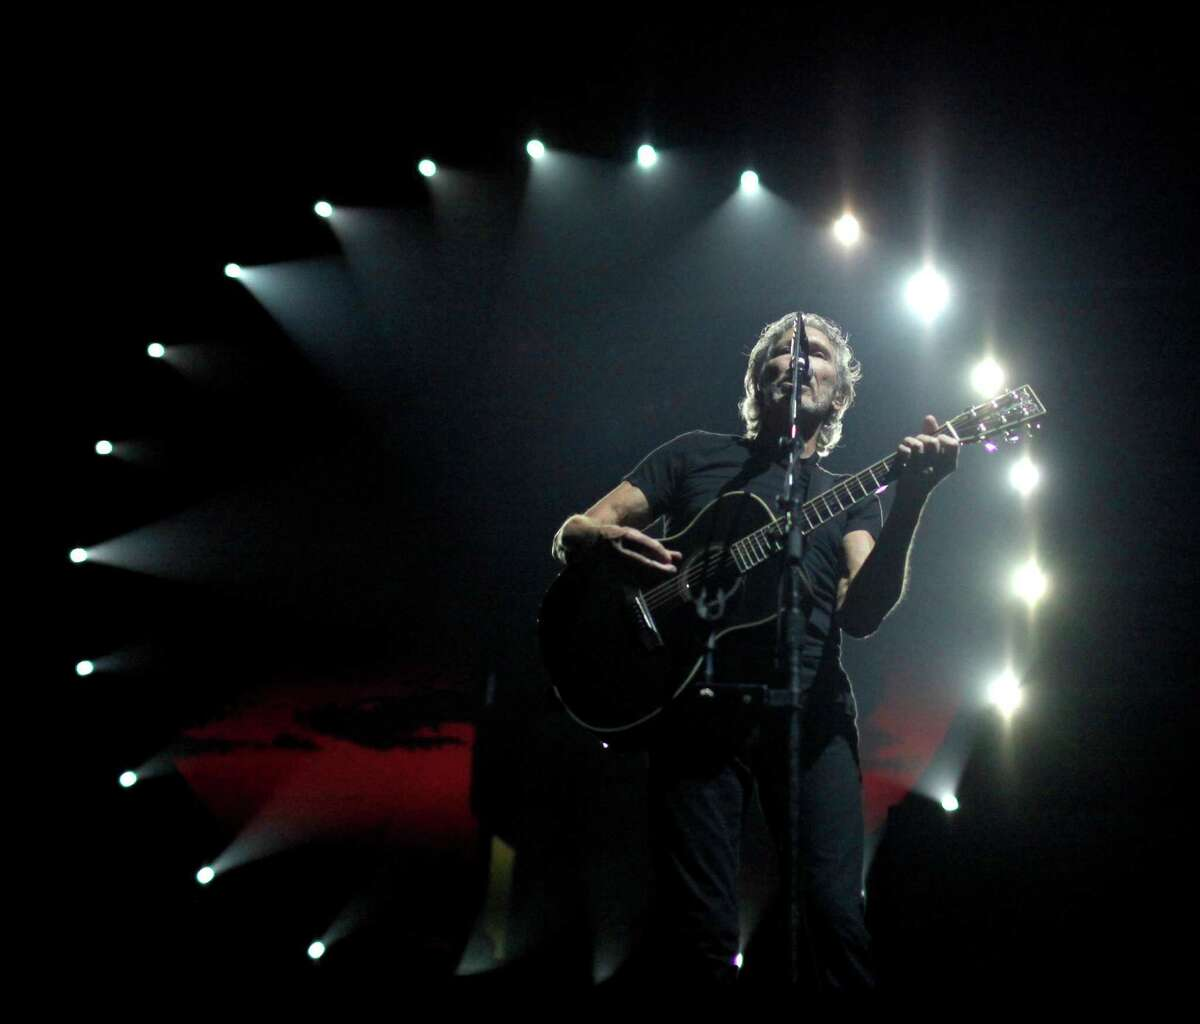 Roger Waters, a founding member of the band Pink Floyd, performs ?The Wall? Live at the Times Union Center in Albany, N.Y. on Thursday, June 28, 2012. (Dan Little / Special to the Times Union)